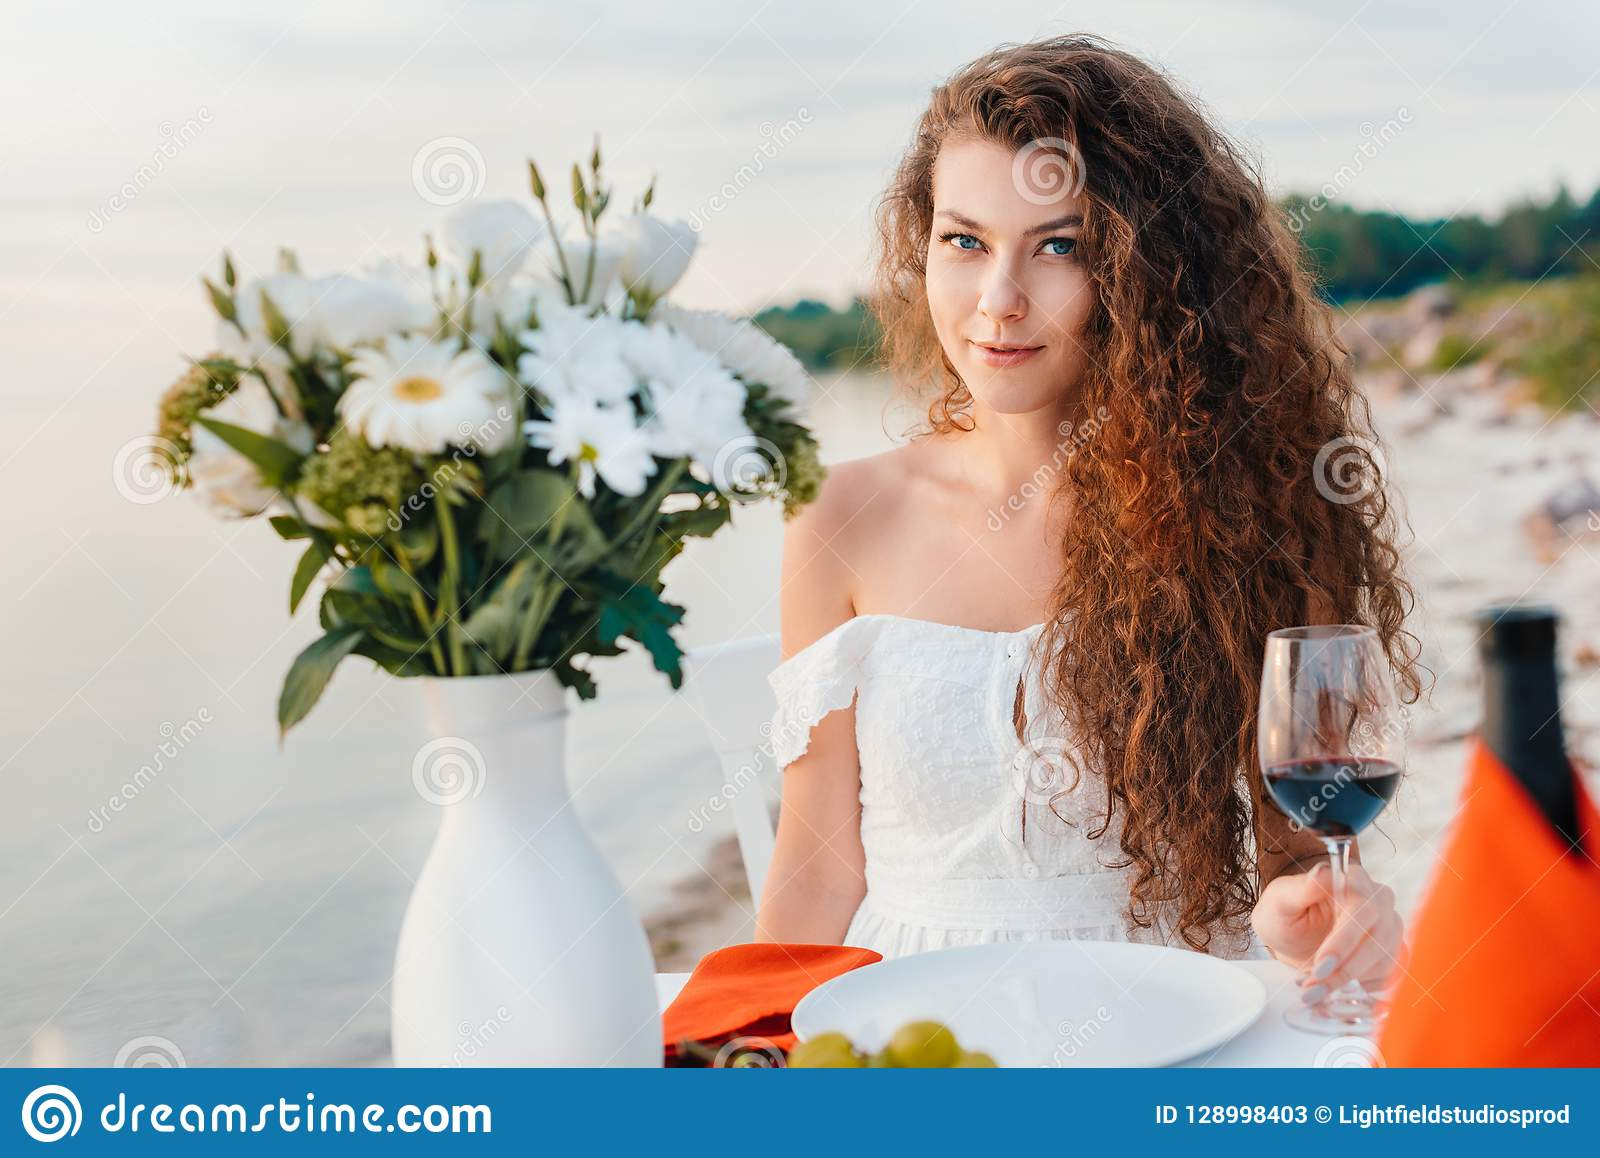 attractive happy girl with glass on wine on romantic date